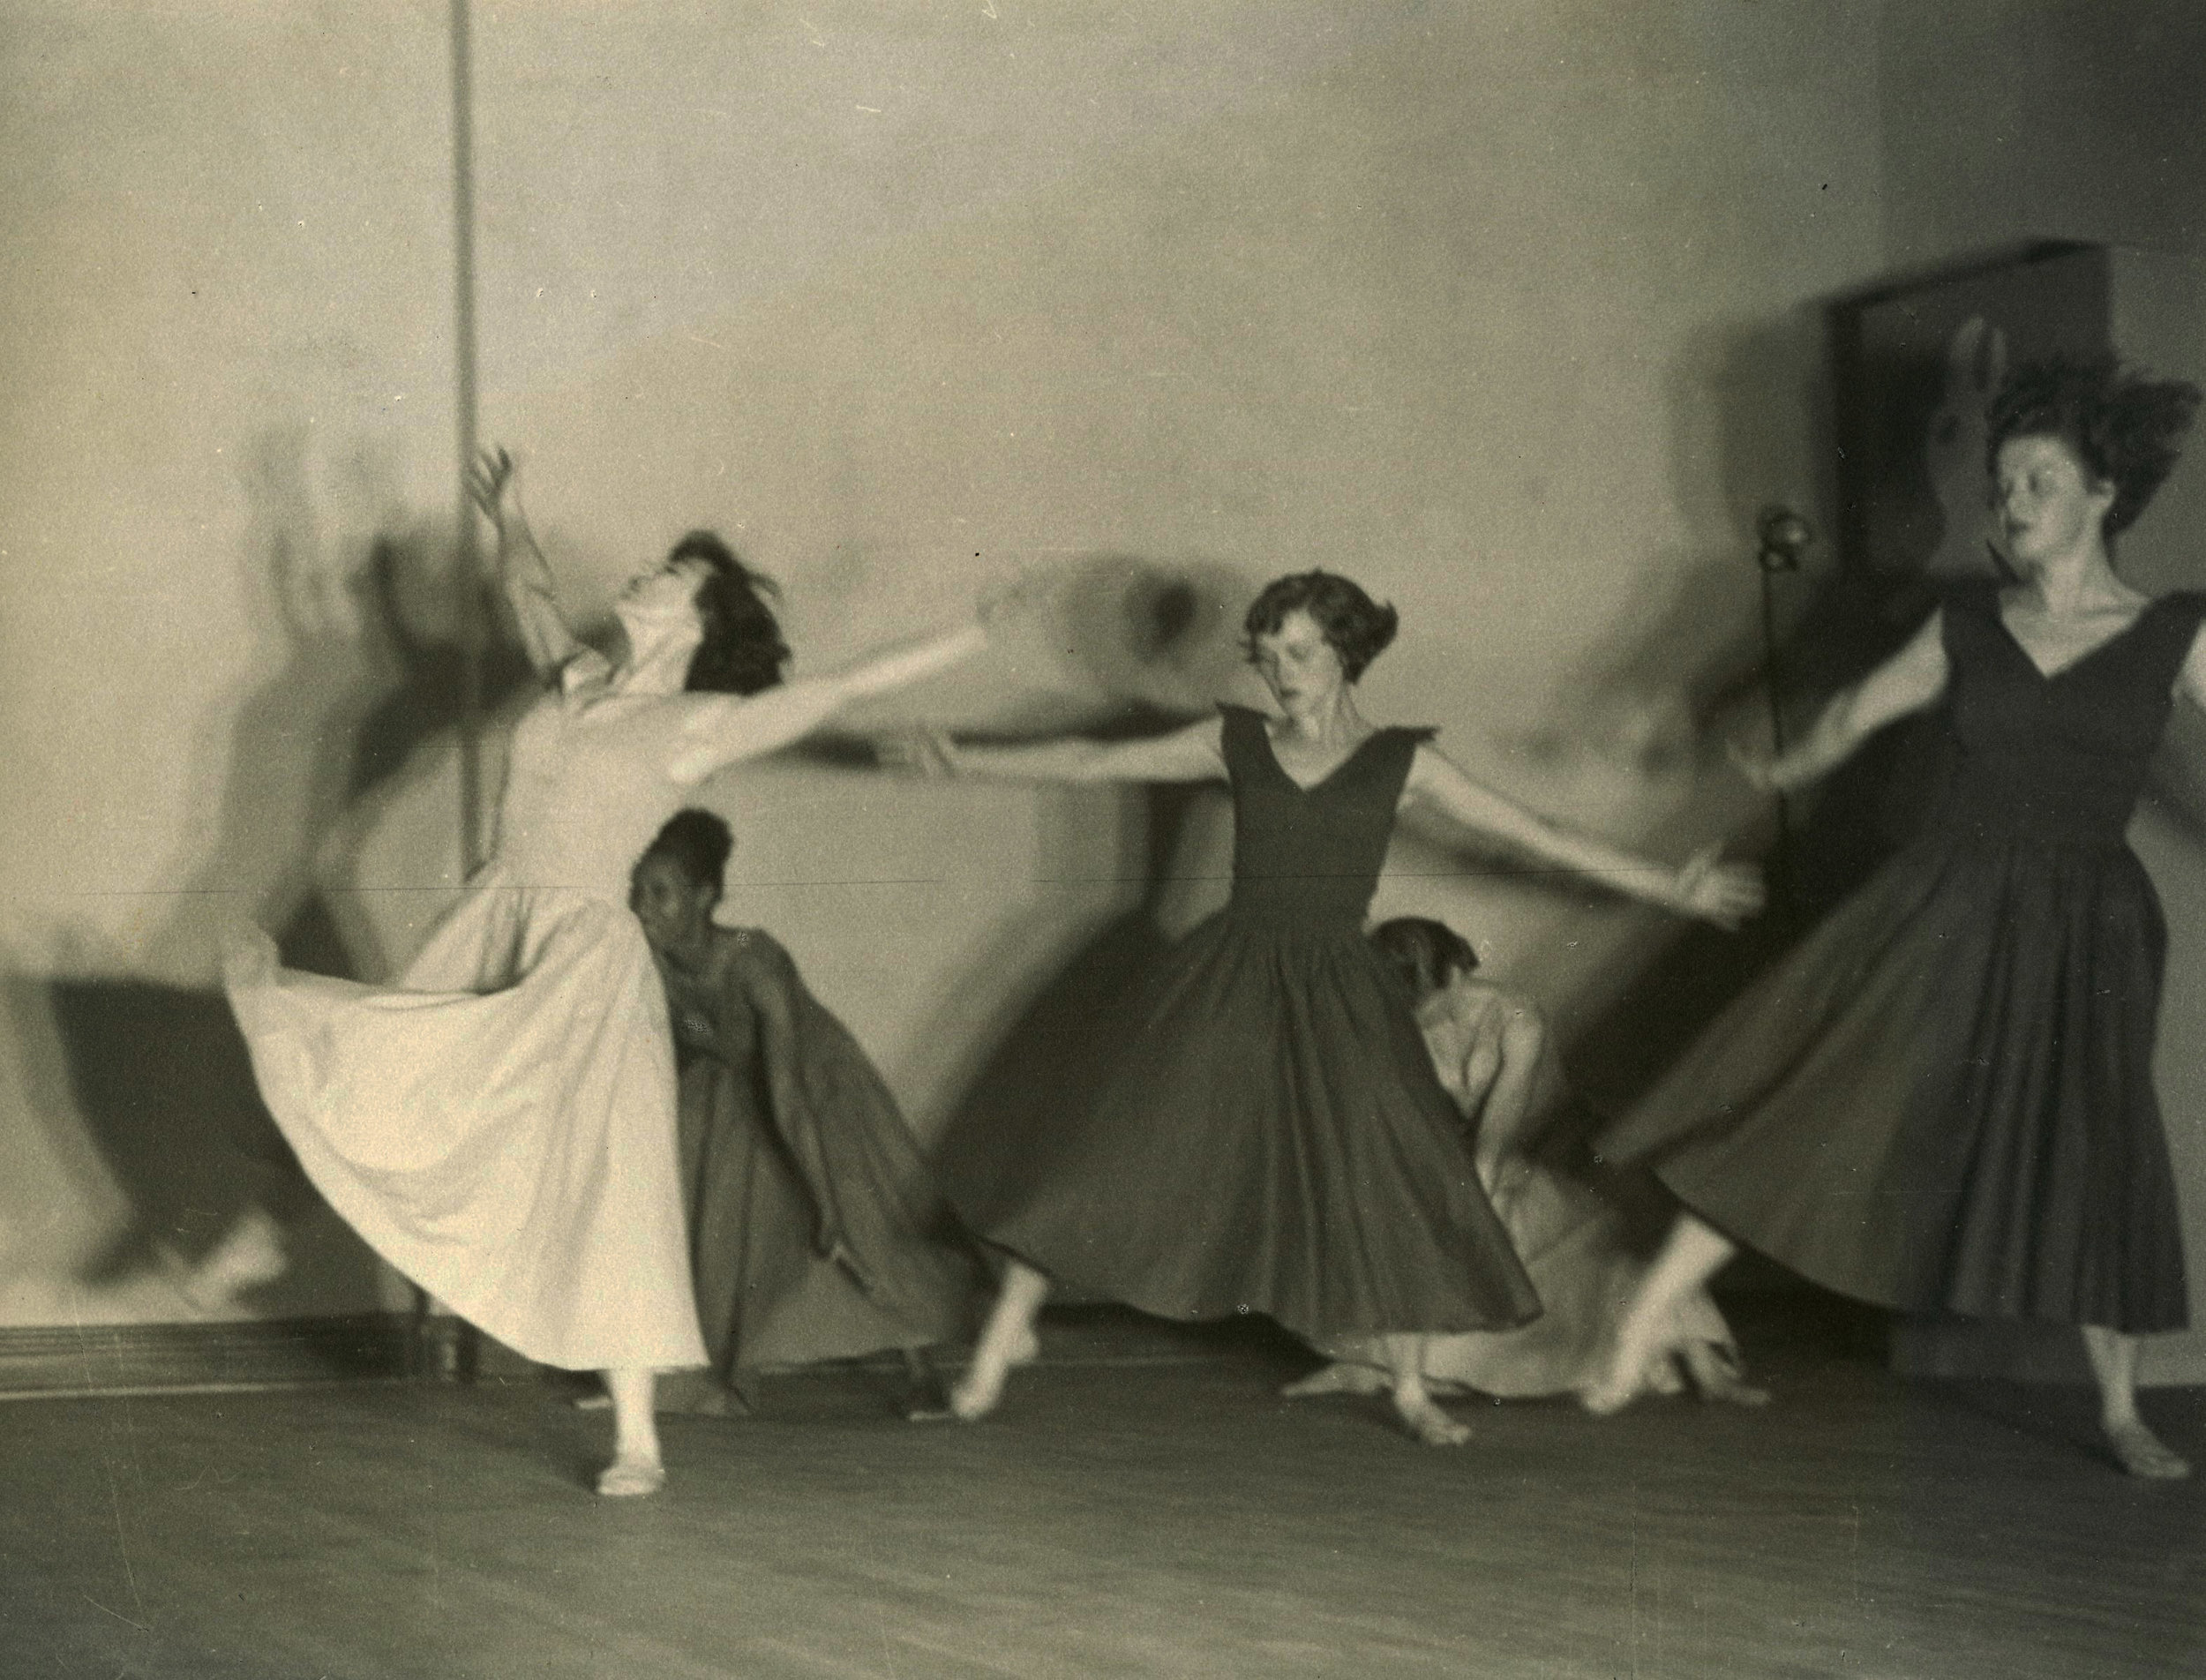 c1940s_le_valse_hpa_christine_buster_bessie_ring_una_nancy_gregson.jpg